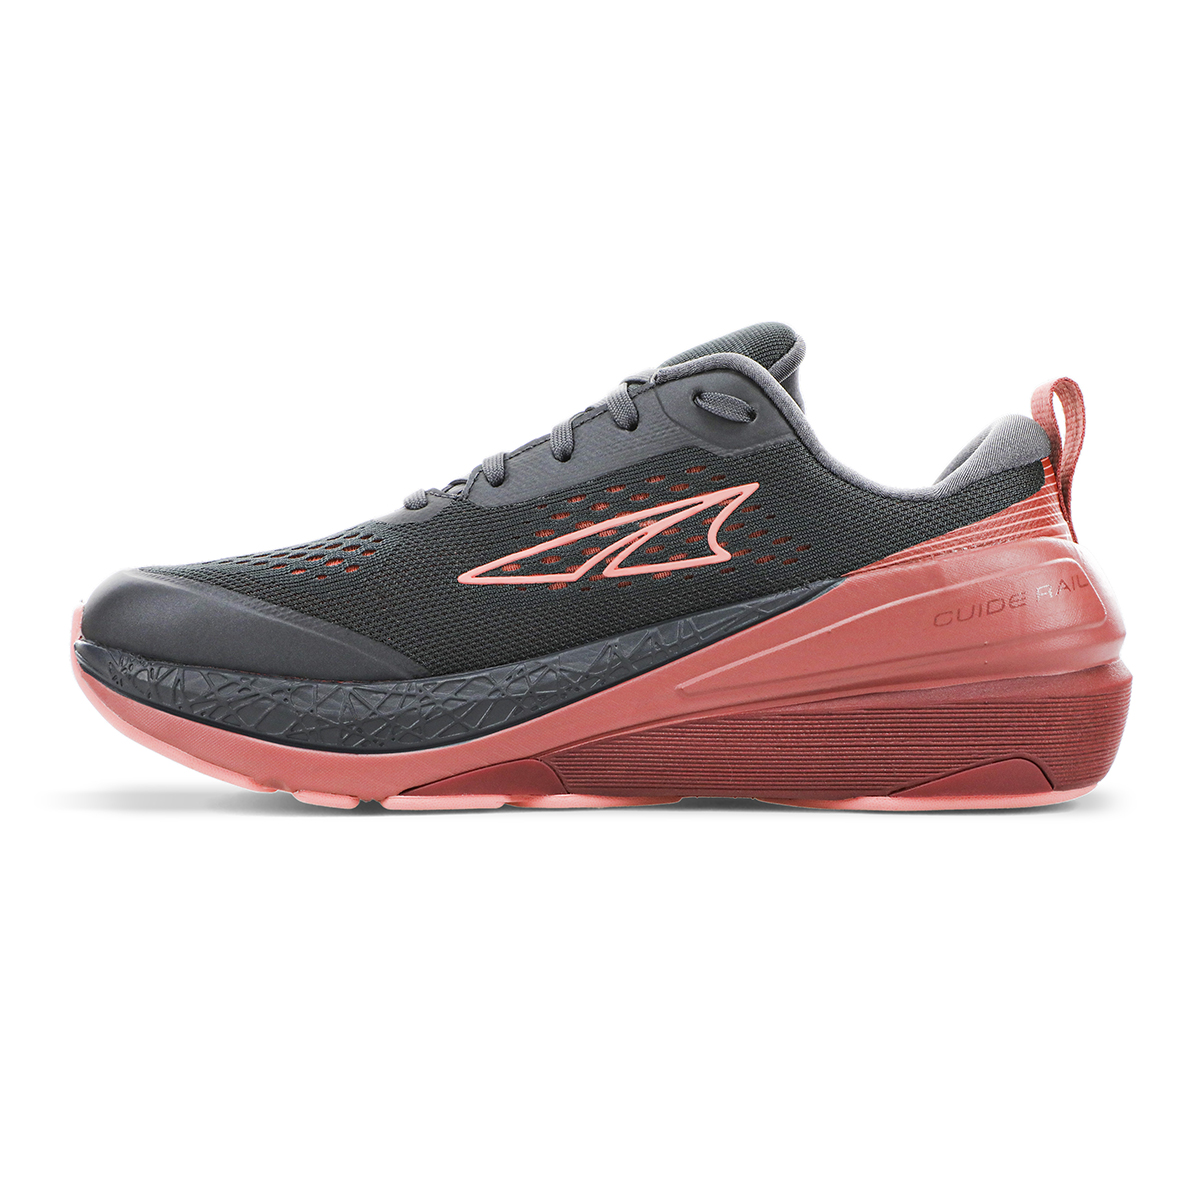 Women's Altra Paradigm 5 Running Shoe - Color: Gray/Coral/Port - Size: 8 - Width: Regular, Gray/Coral/Port, large, image 4